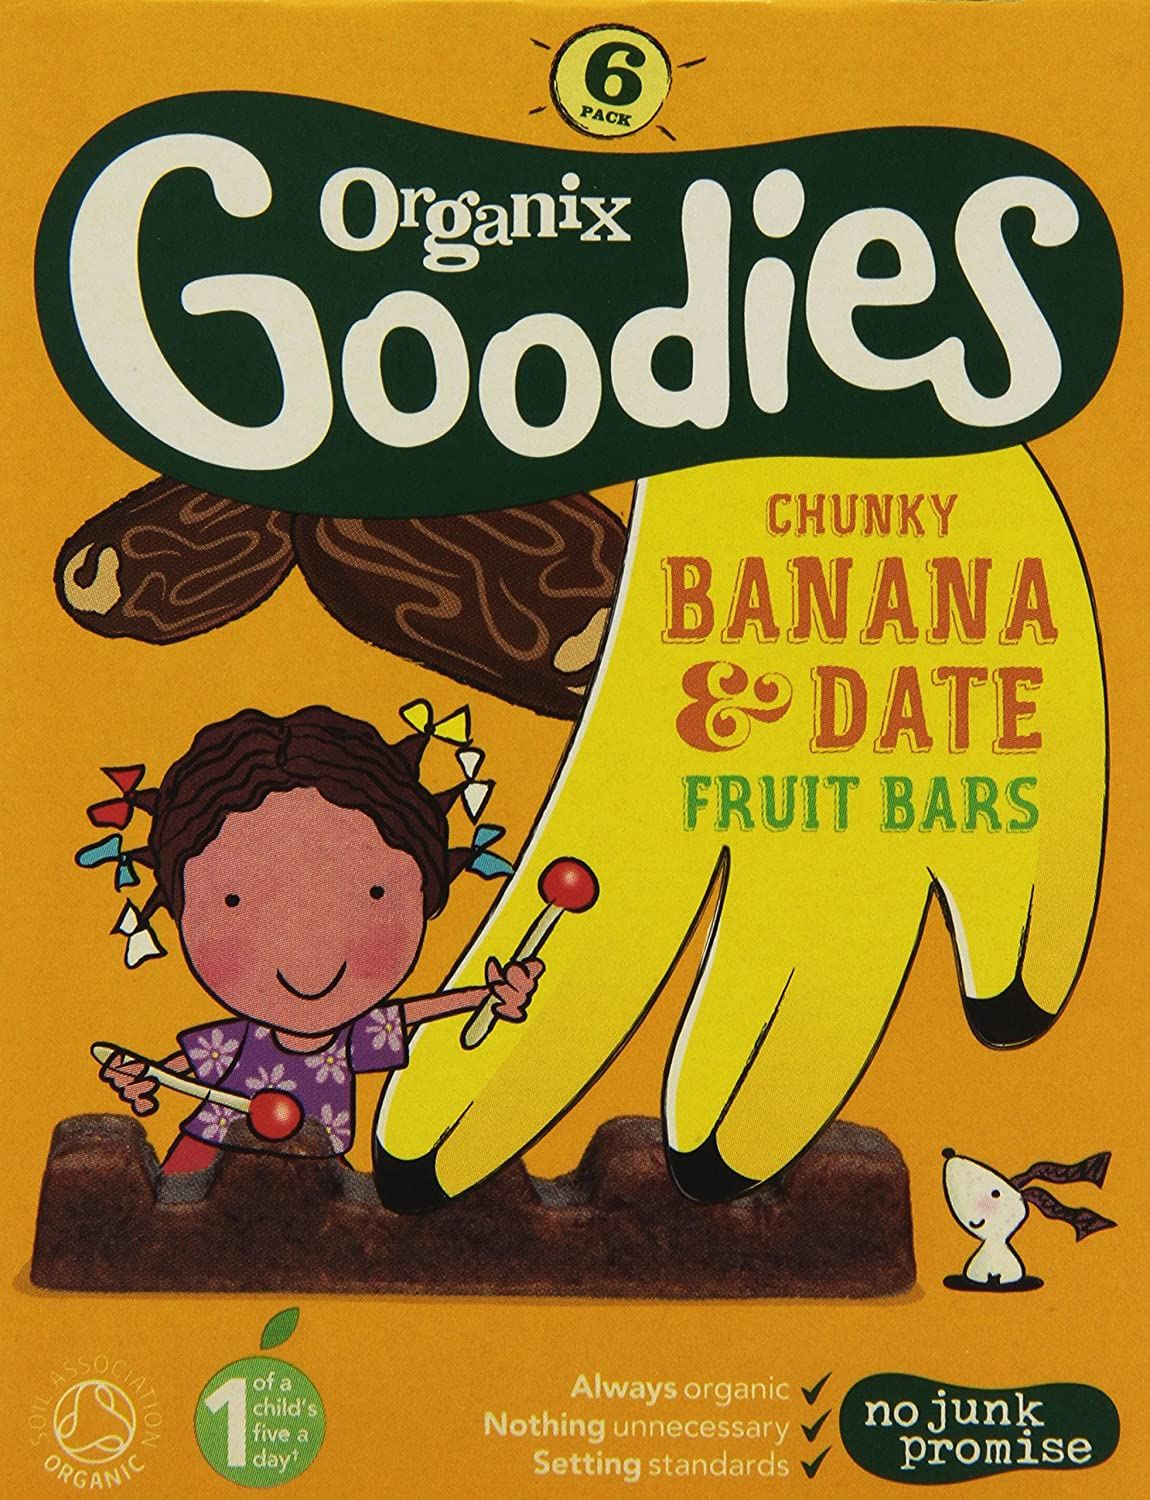 Goodies Organic Date and Banana Chunky Fruit Bars 6 x 17 g (Pack of 3, Total 18 bars) 82756